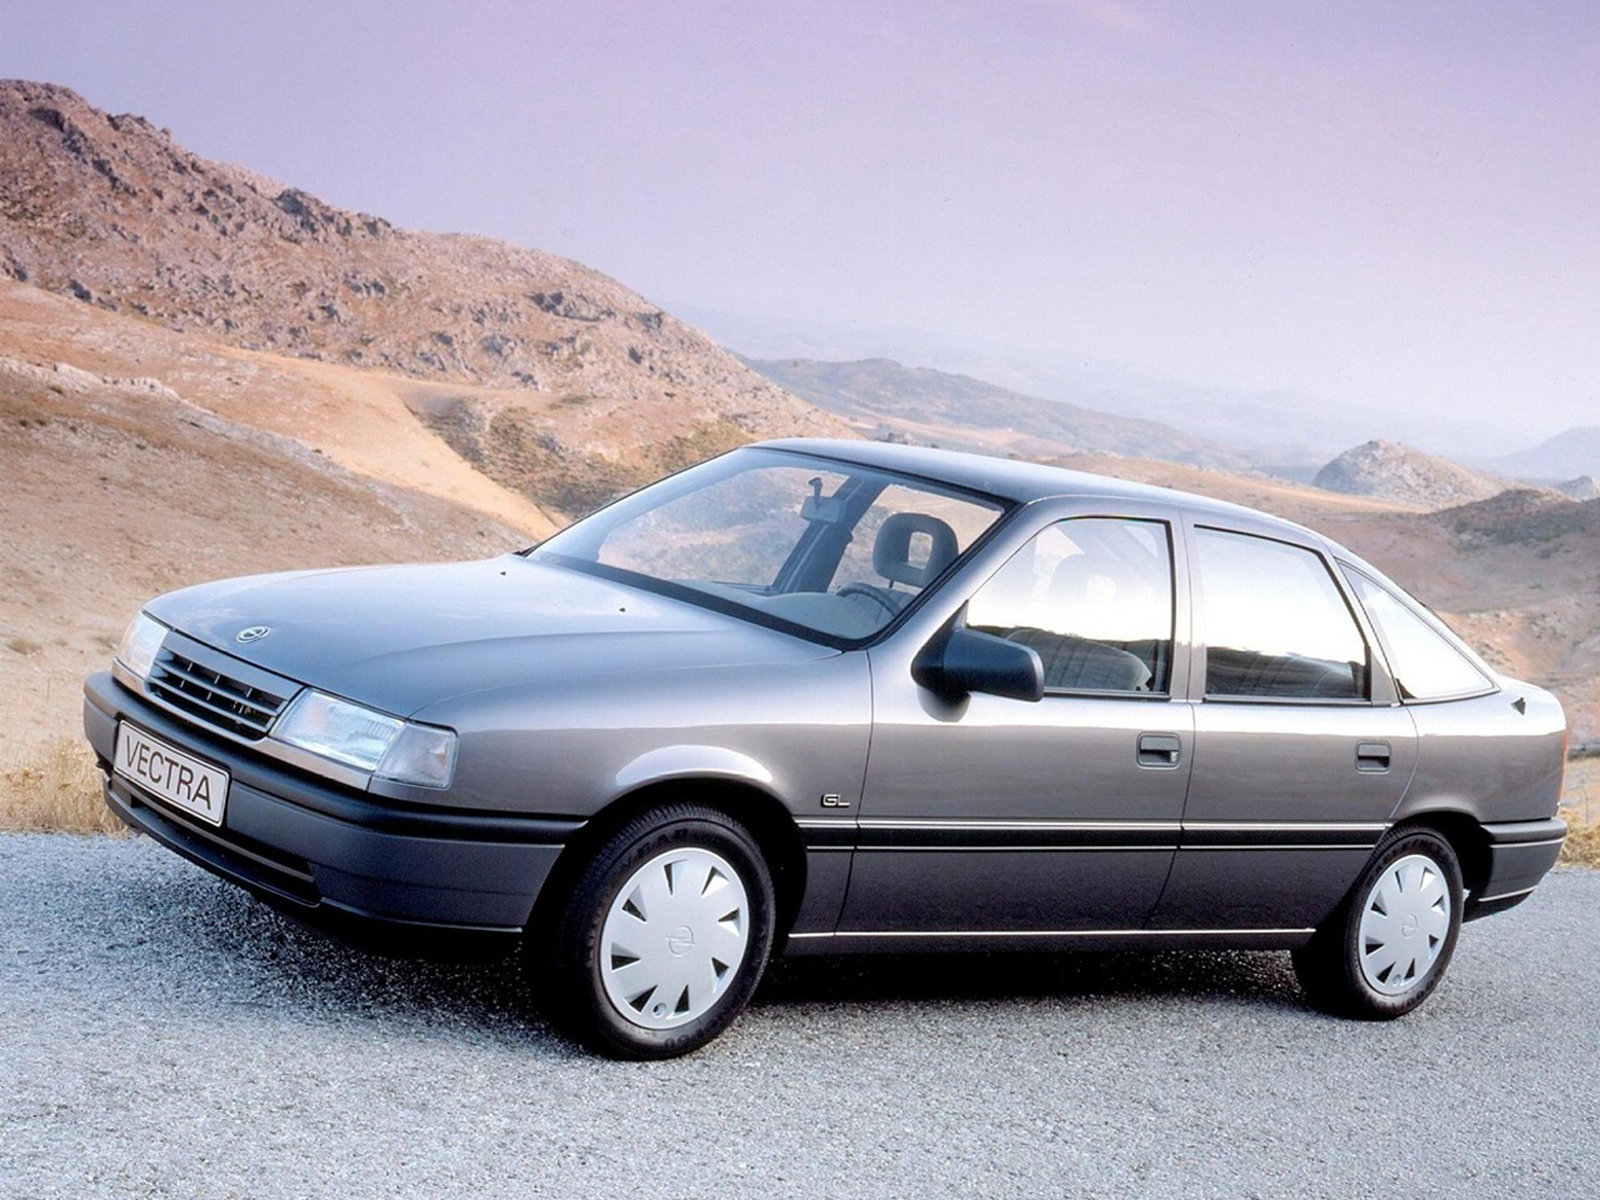 Opel Vectra Hatchback: 04 фото